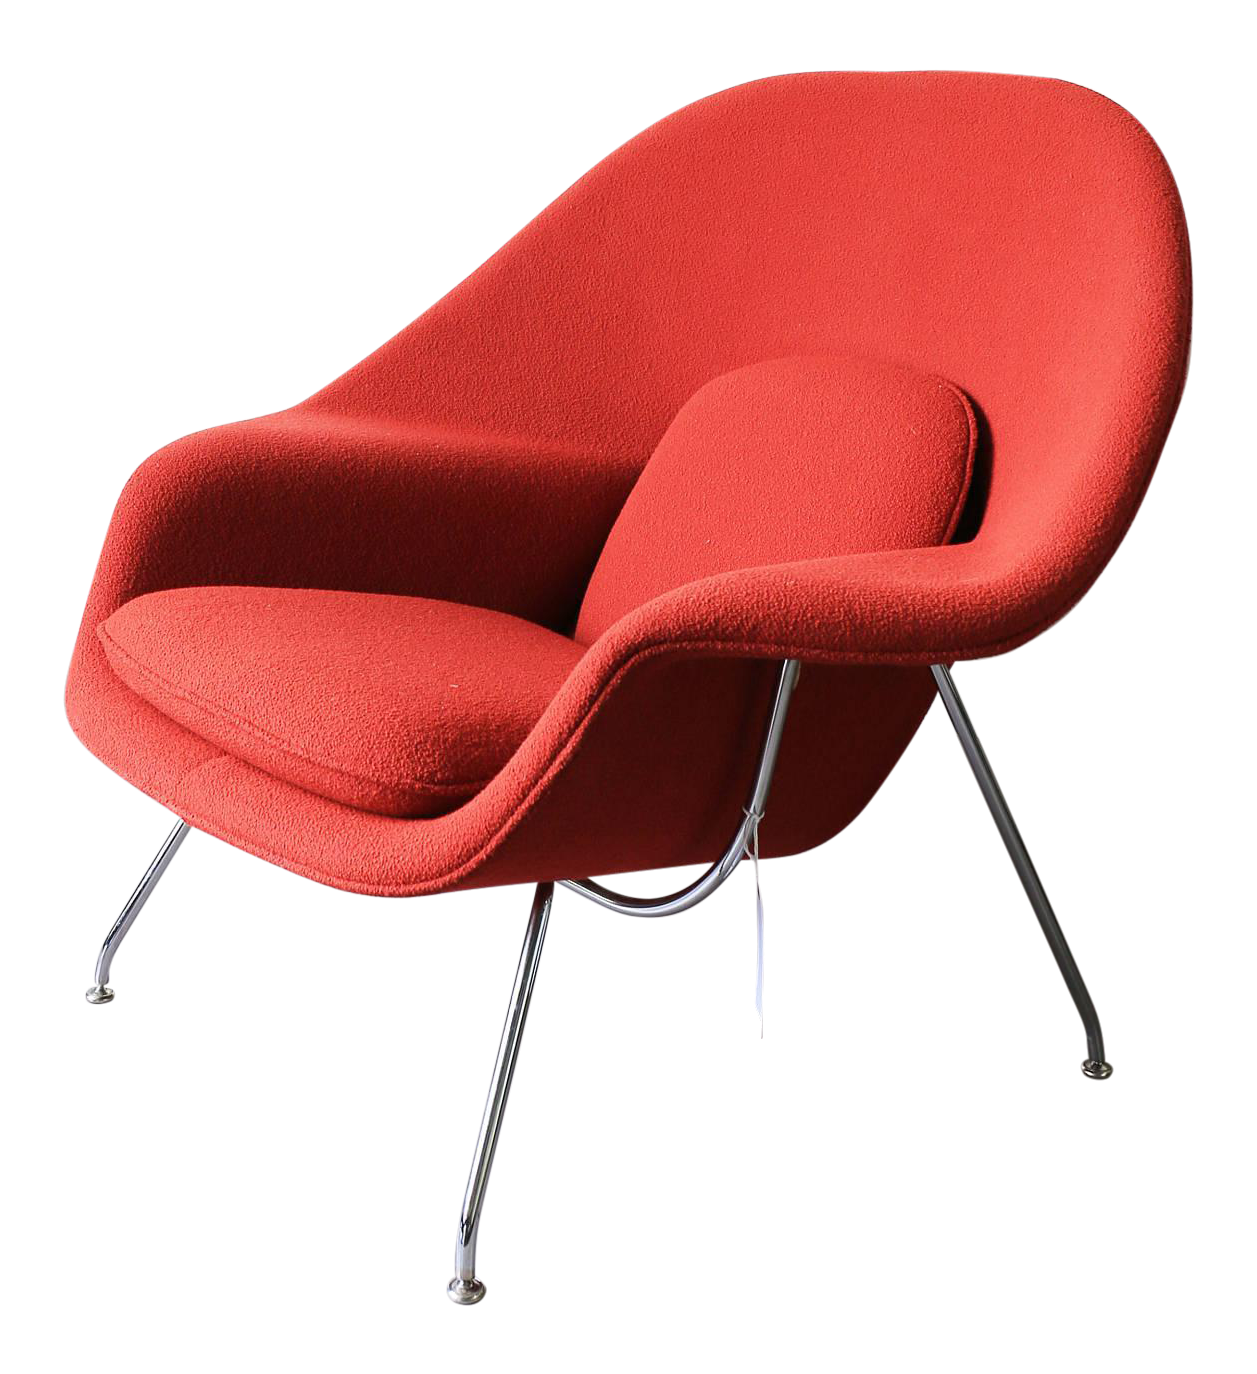 Knoll womb chair - Knoll Womb Chair 26